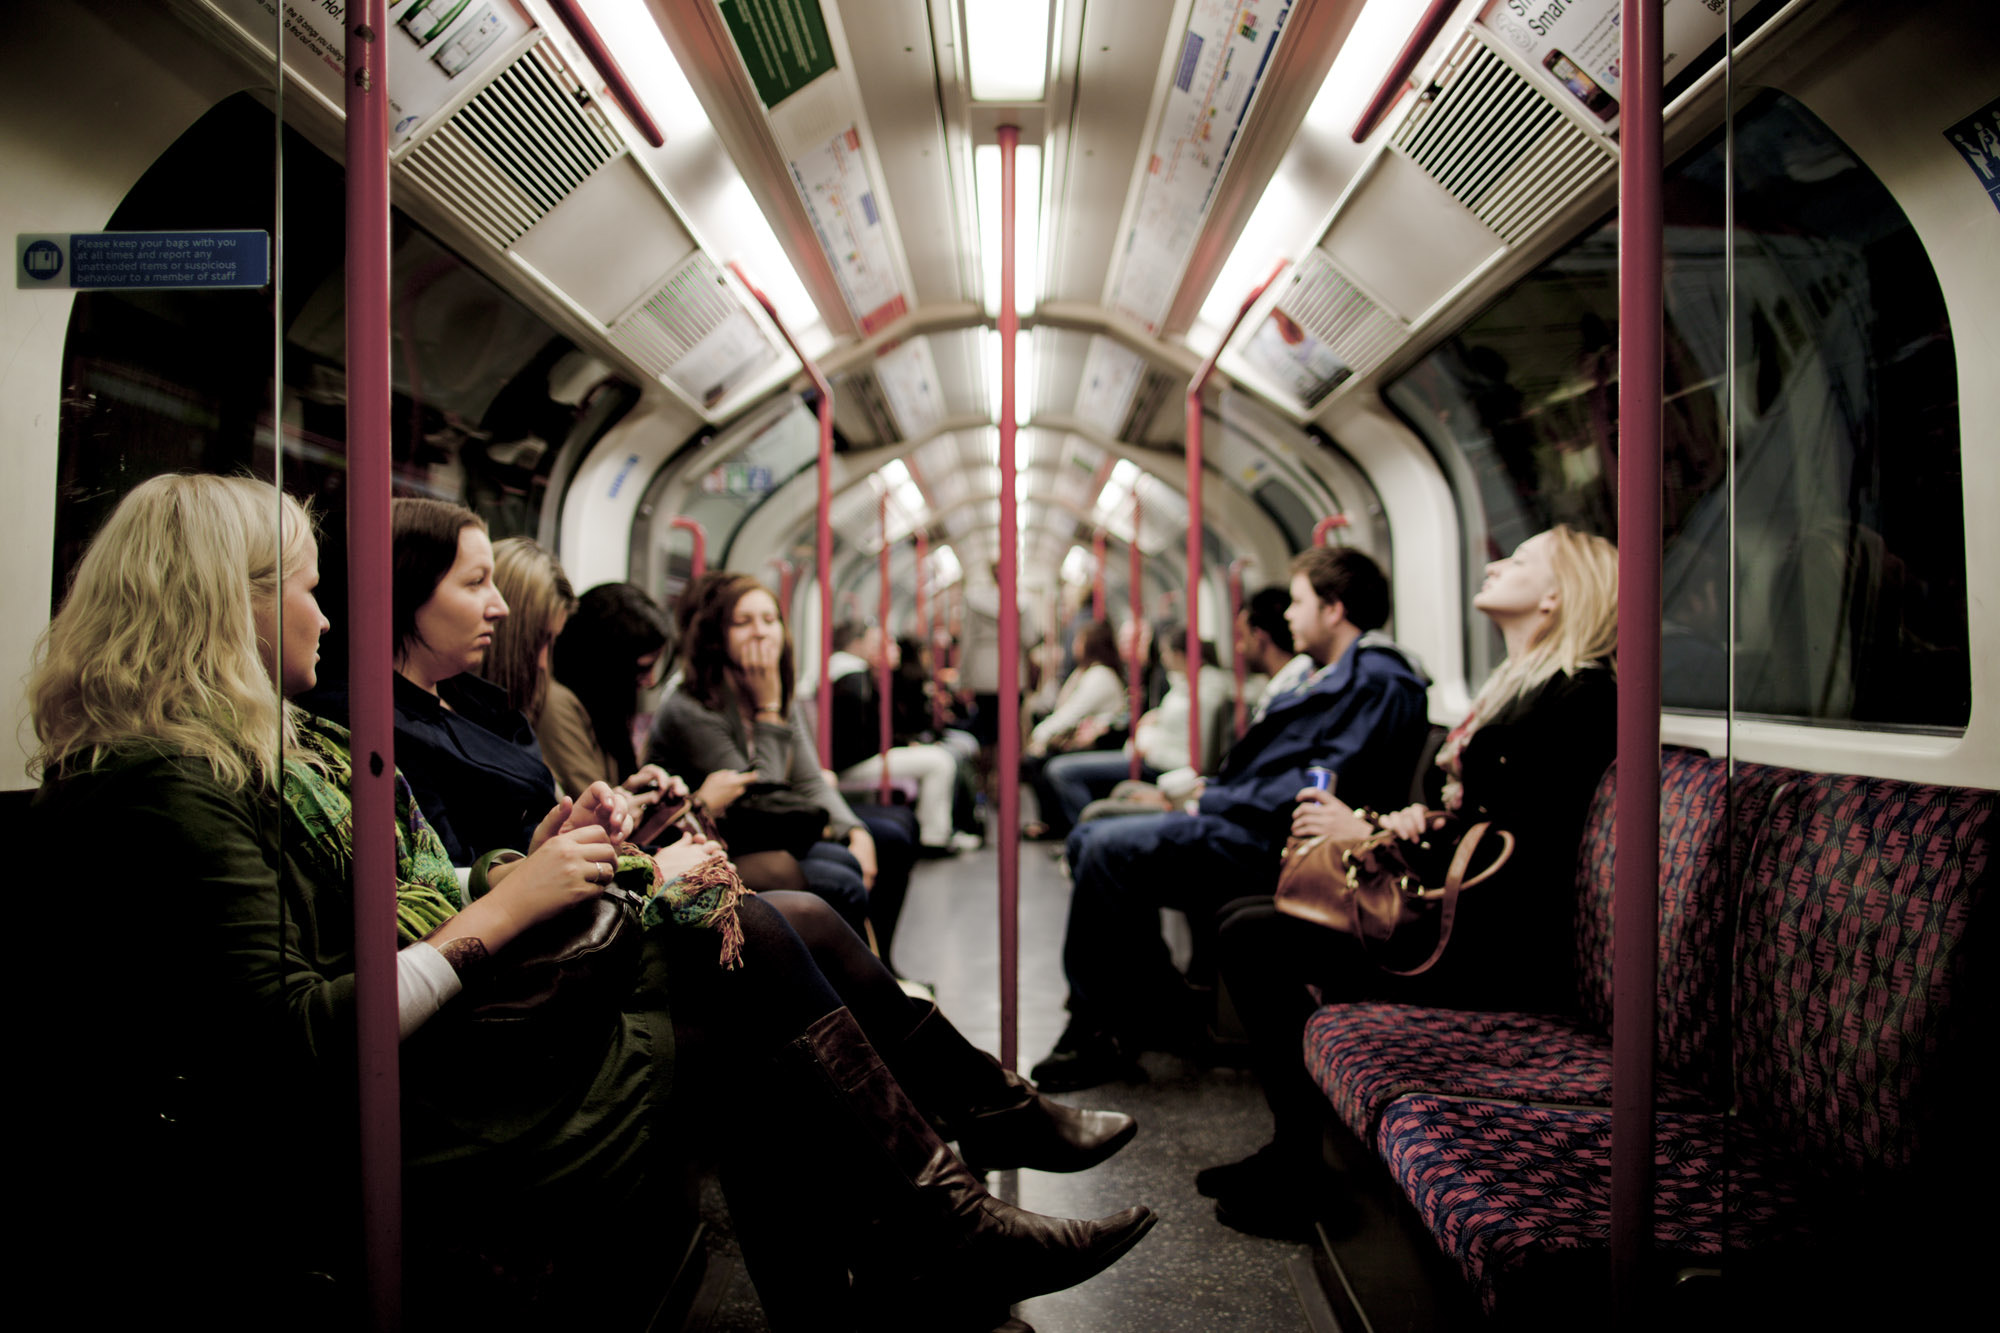 Photograph Subway by Tony Eccles on 500px